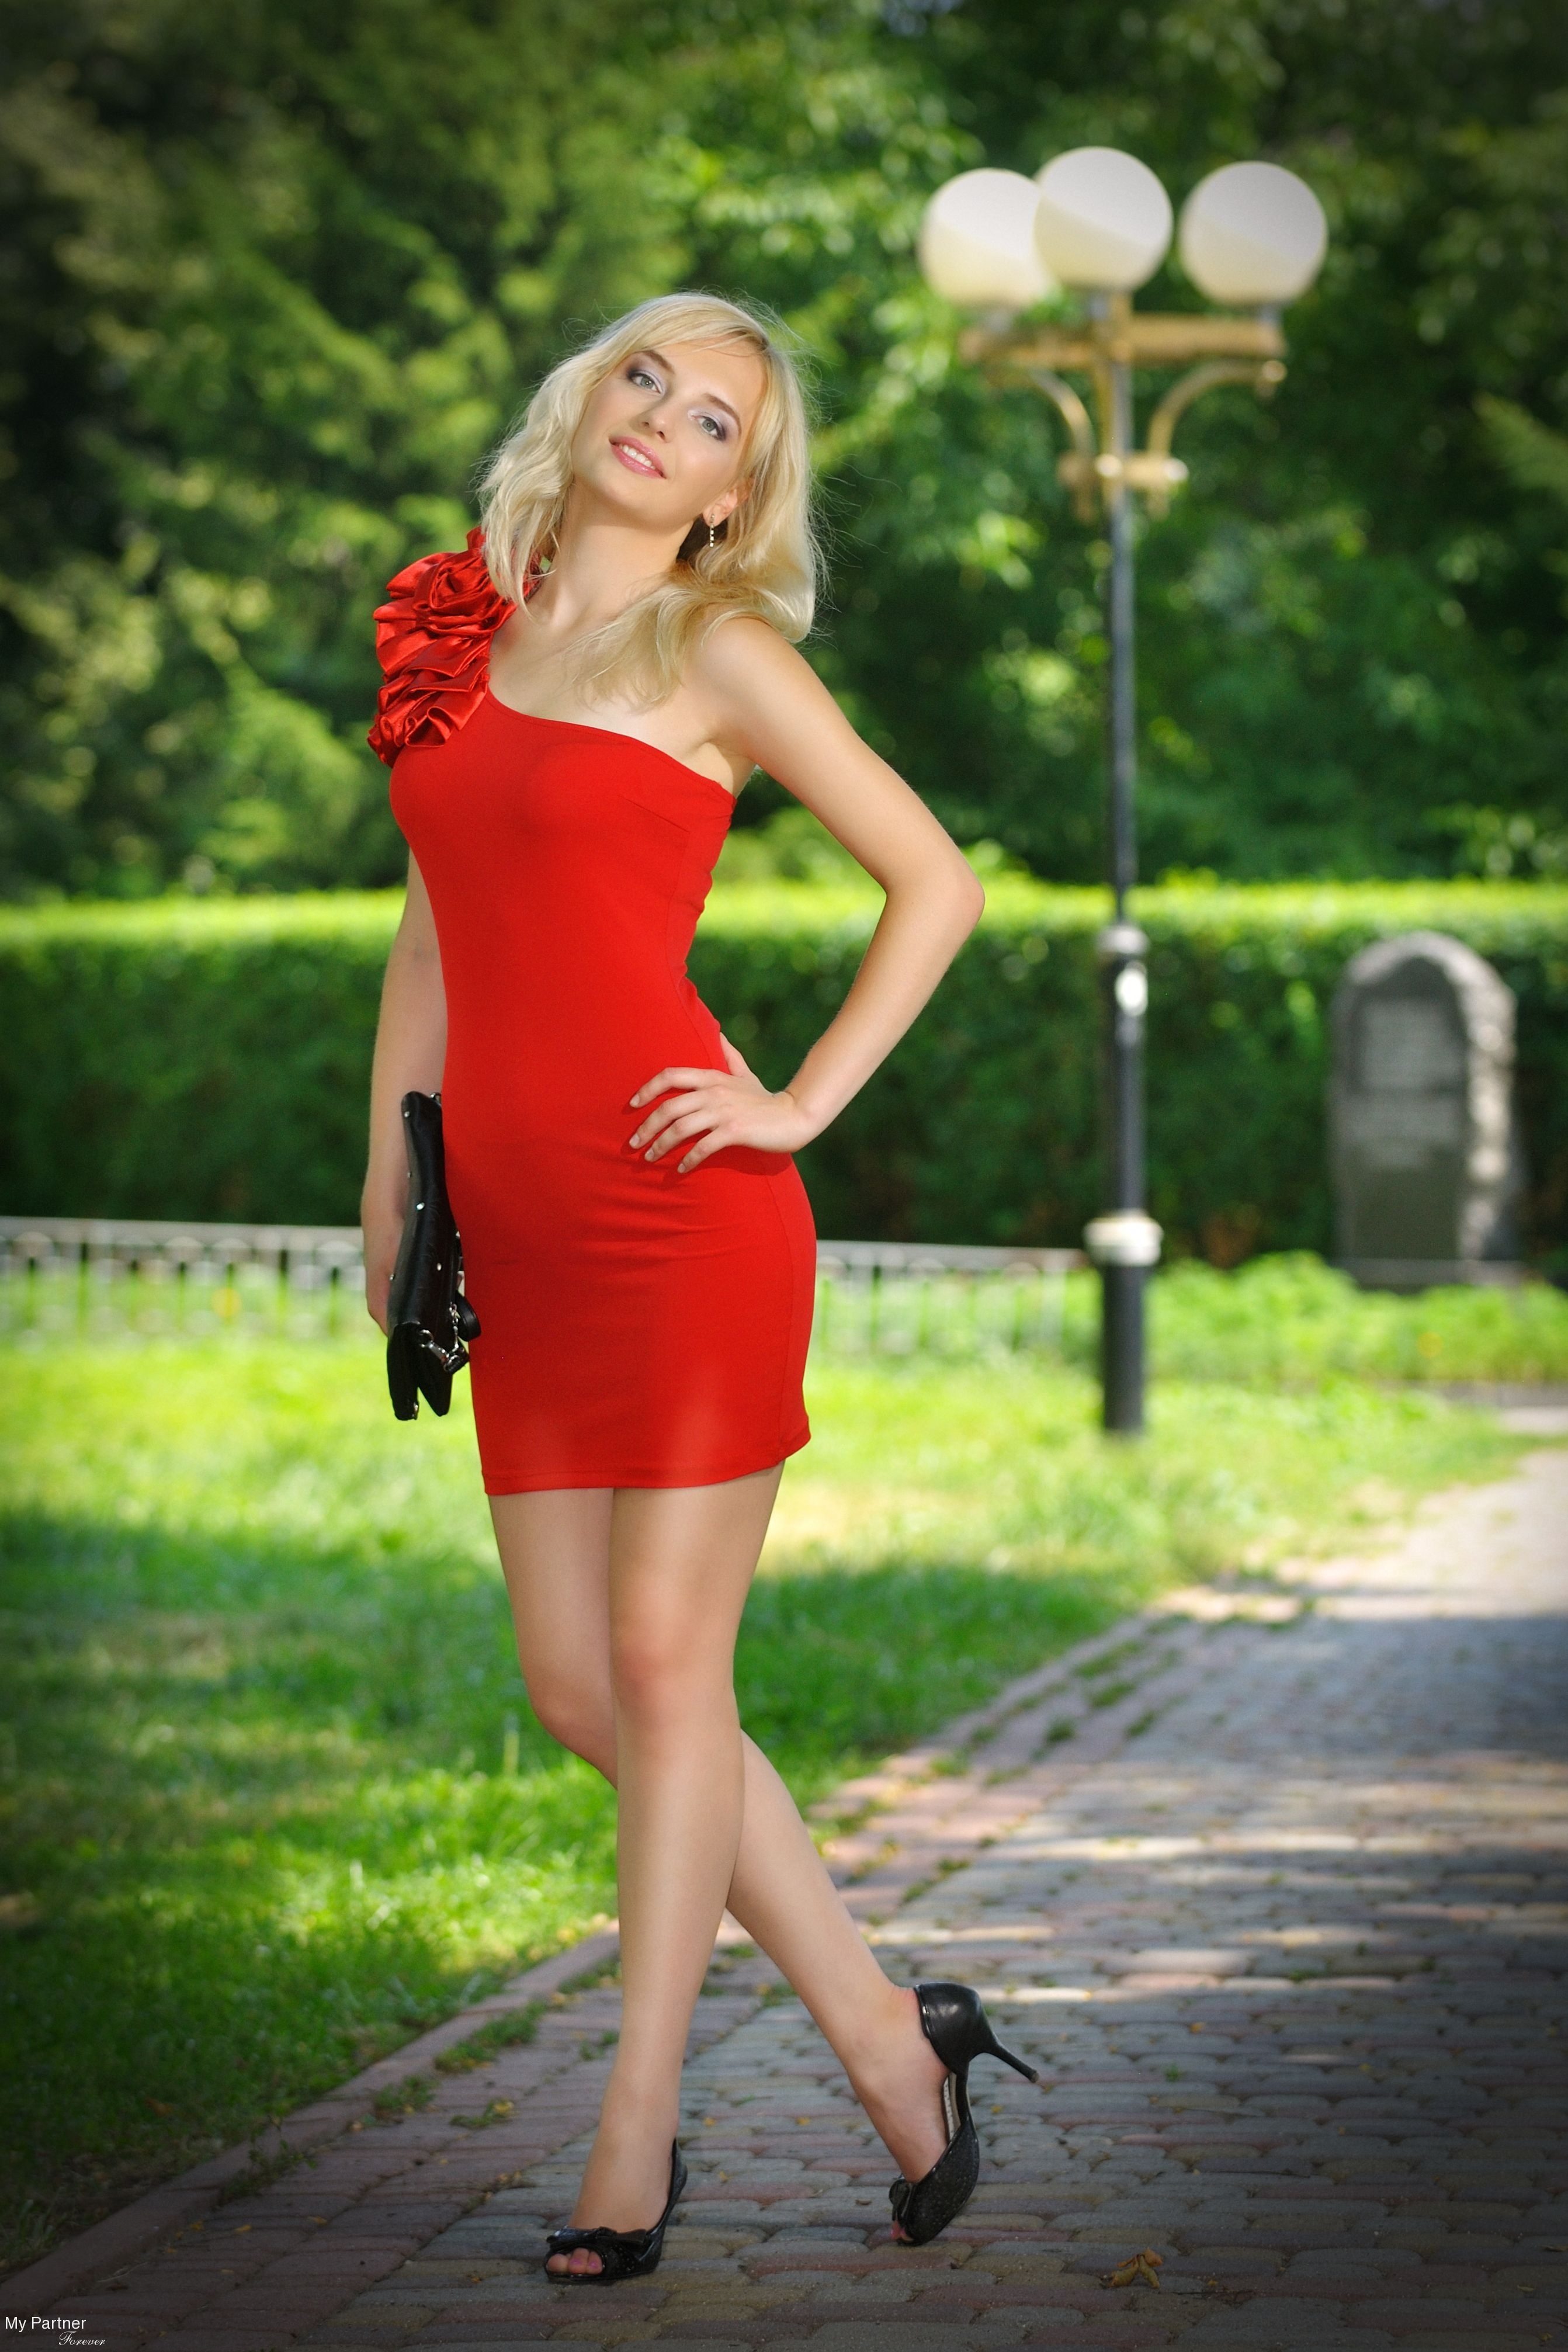 To Meet Single Russian Women 2